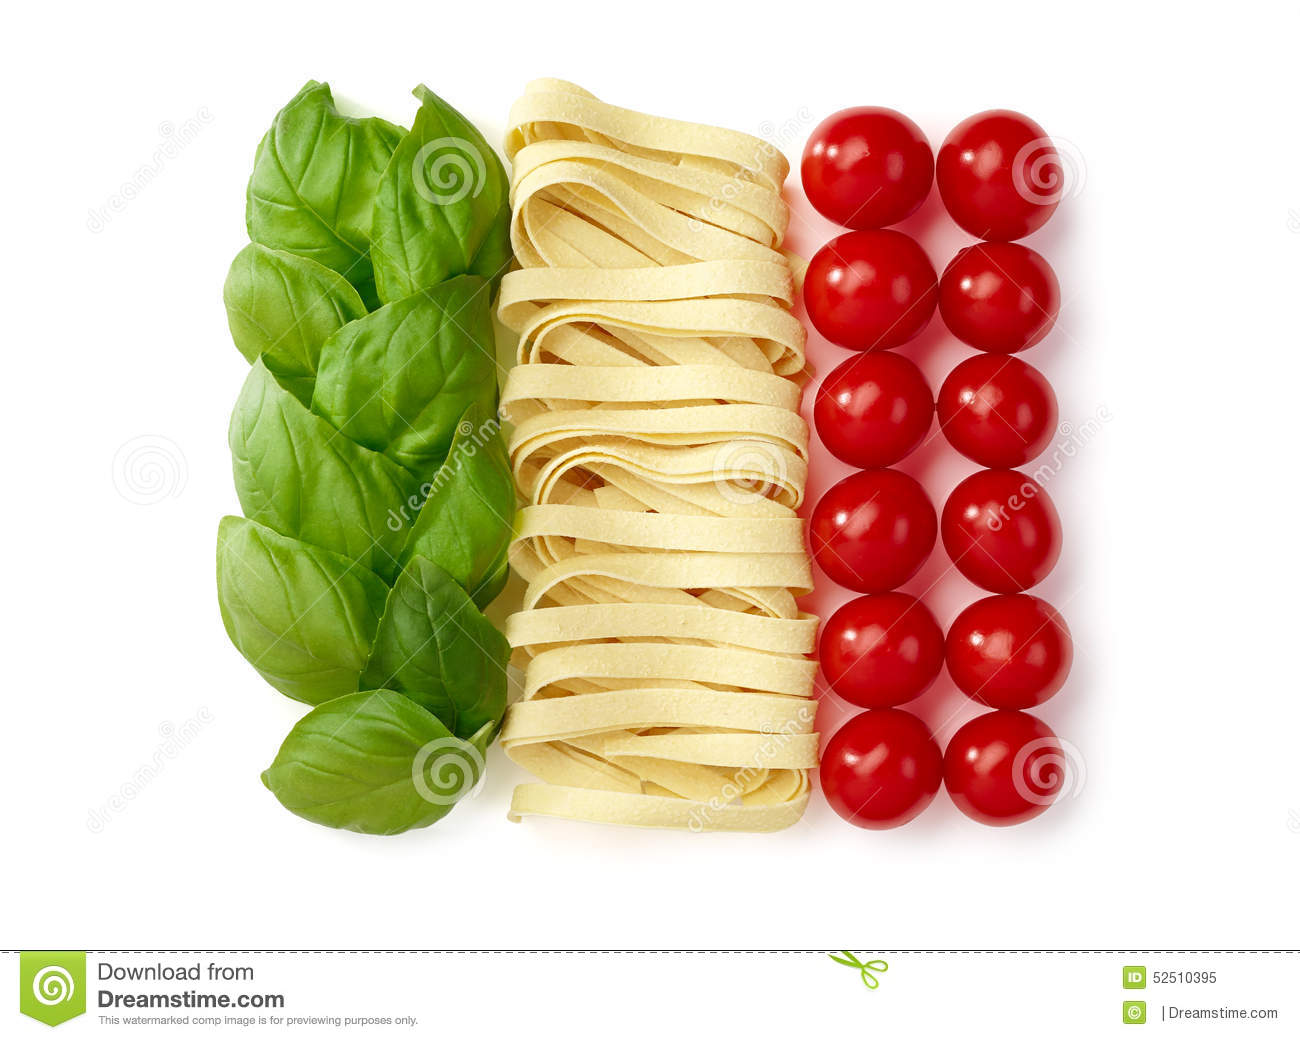 tricolore italian food stock image image of italy details 52510395